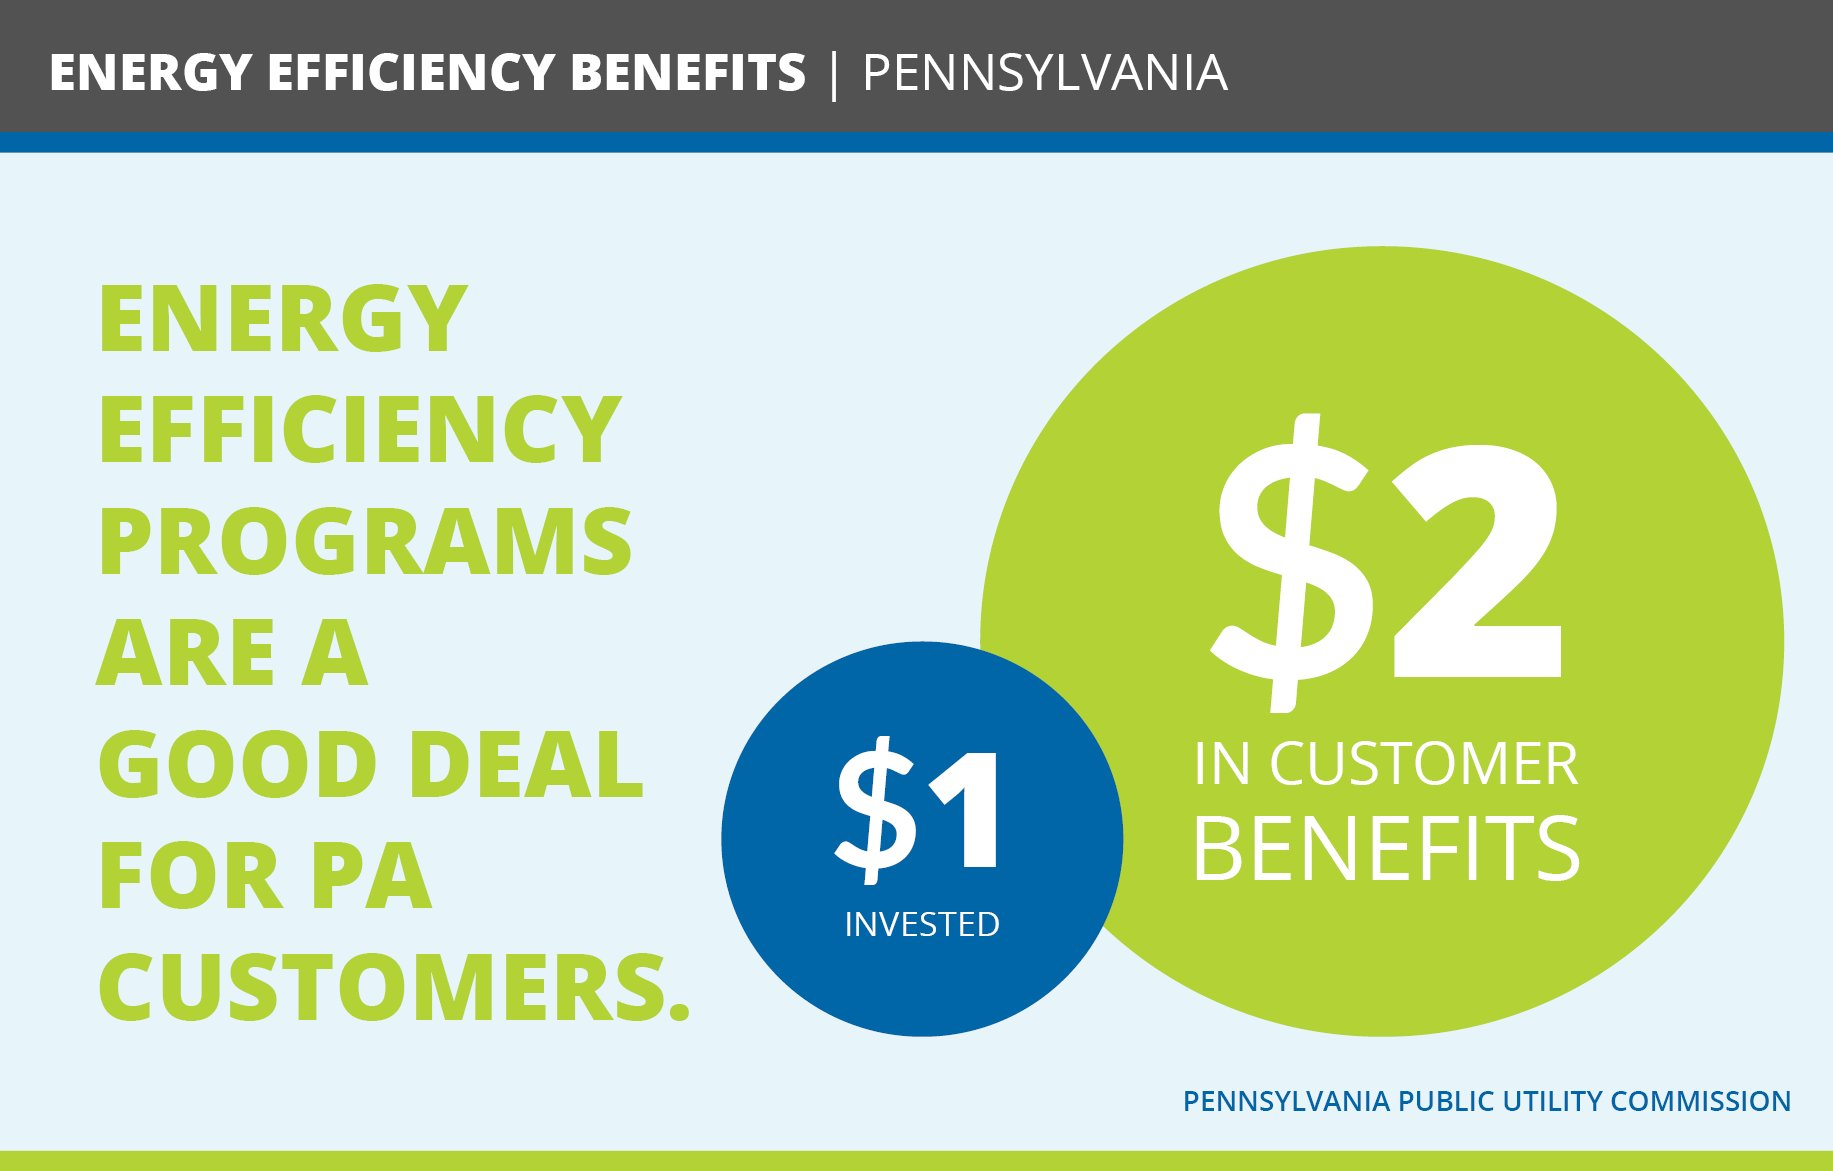 Business leaders care about returns on investment. Pennsylvania businesses & citizens are getting a good deal on #energyefficiency. https://t.co/KldTBClzBX